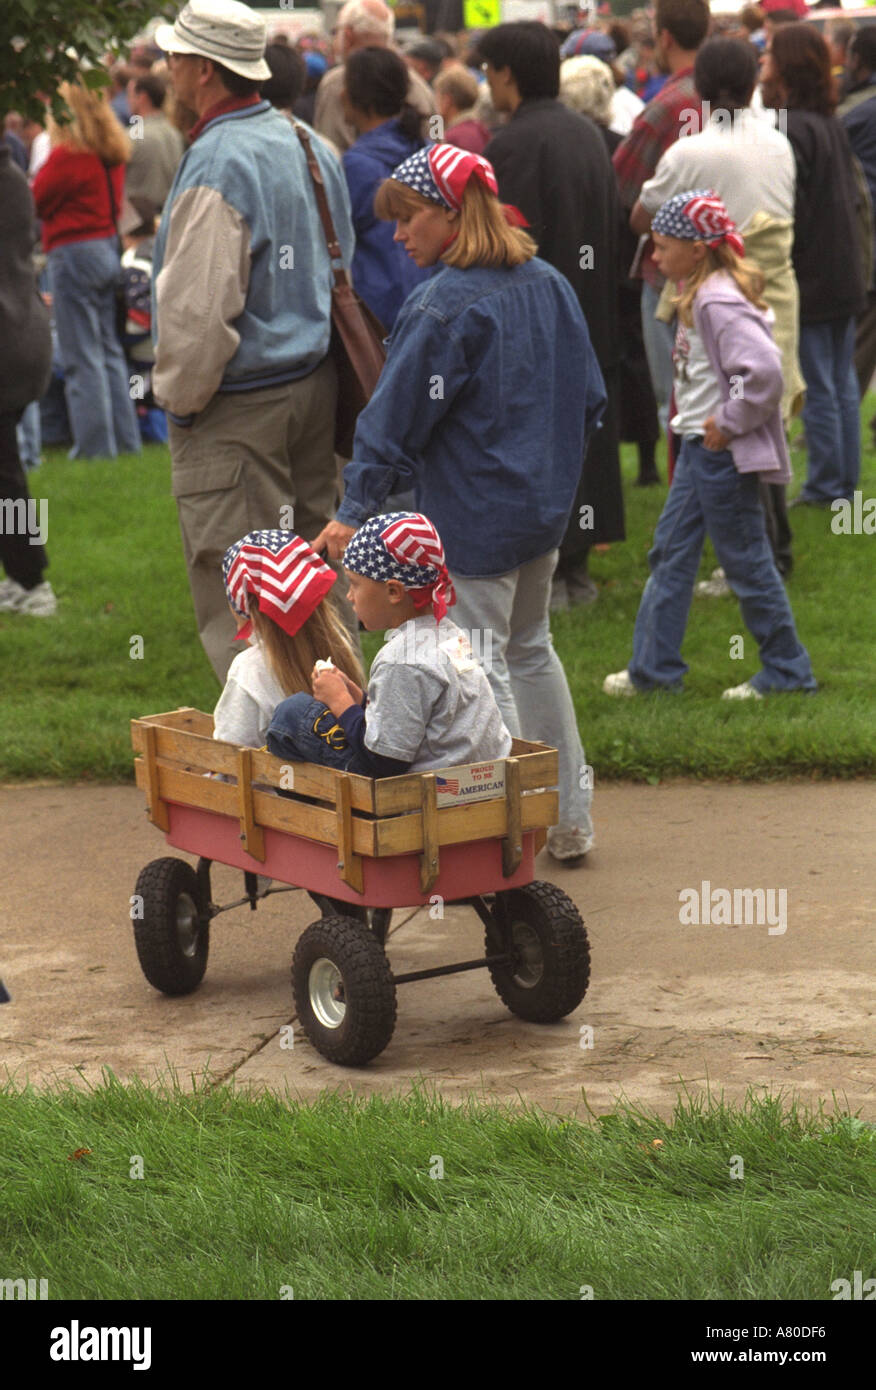 Mom pulling wagon children with flag kerchief at Minnesota Memorial for 9/11 victims at state capitol. St Paul Minnesota MN USA - Stock Image